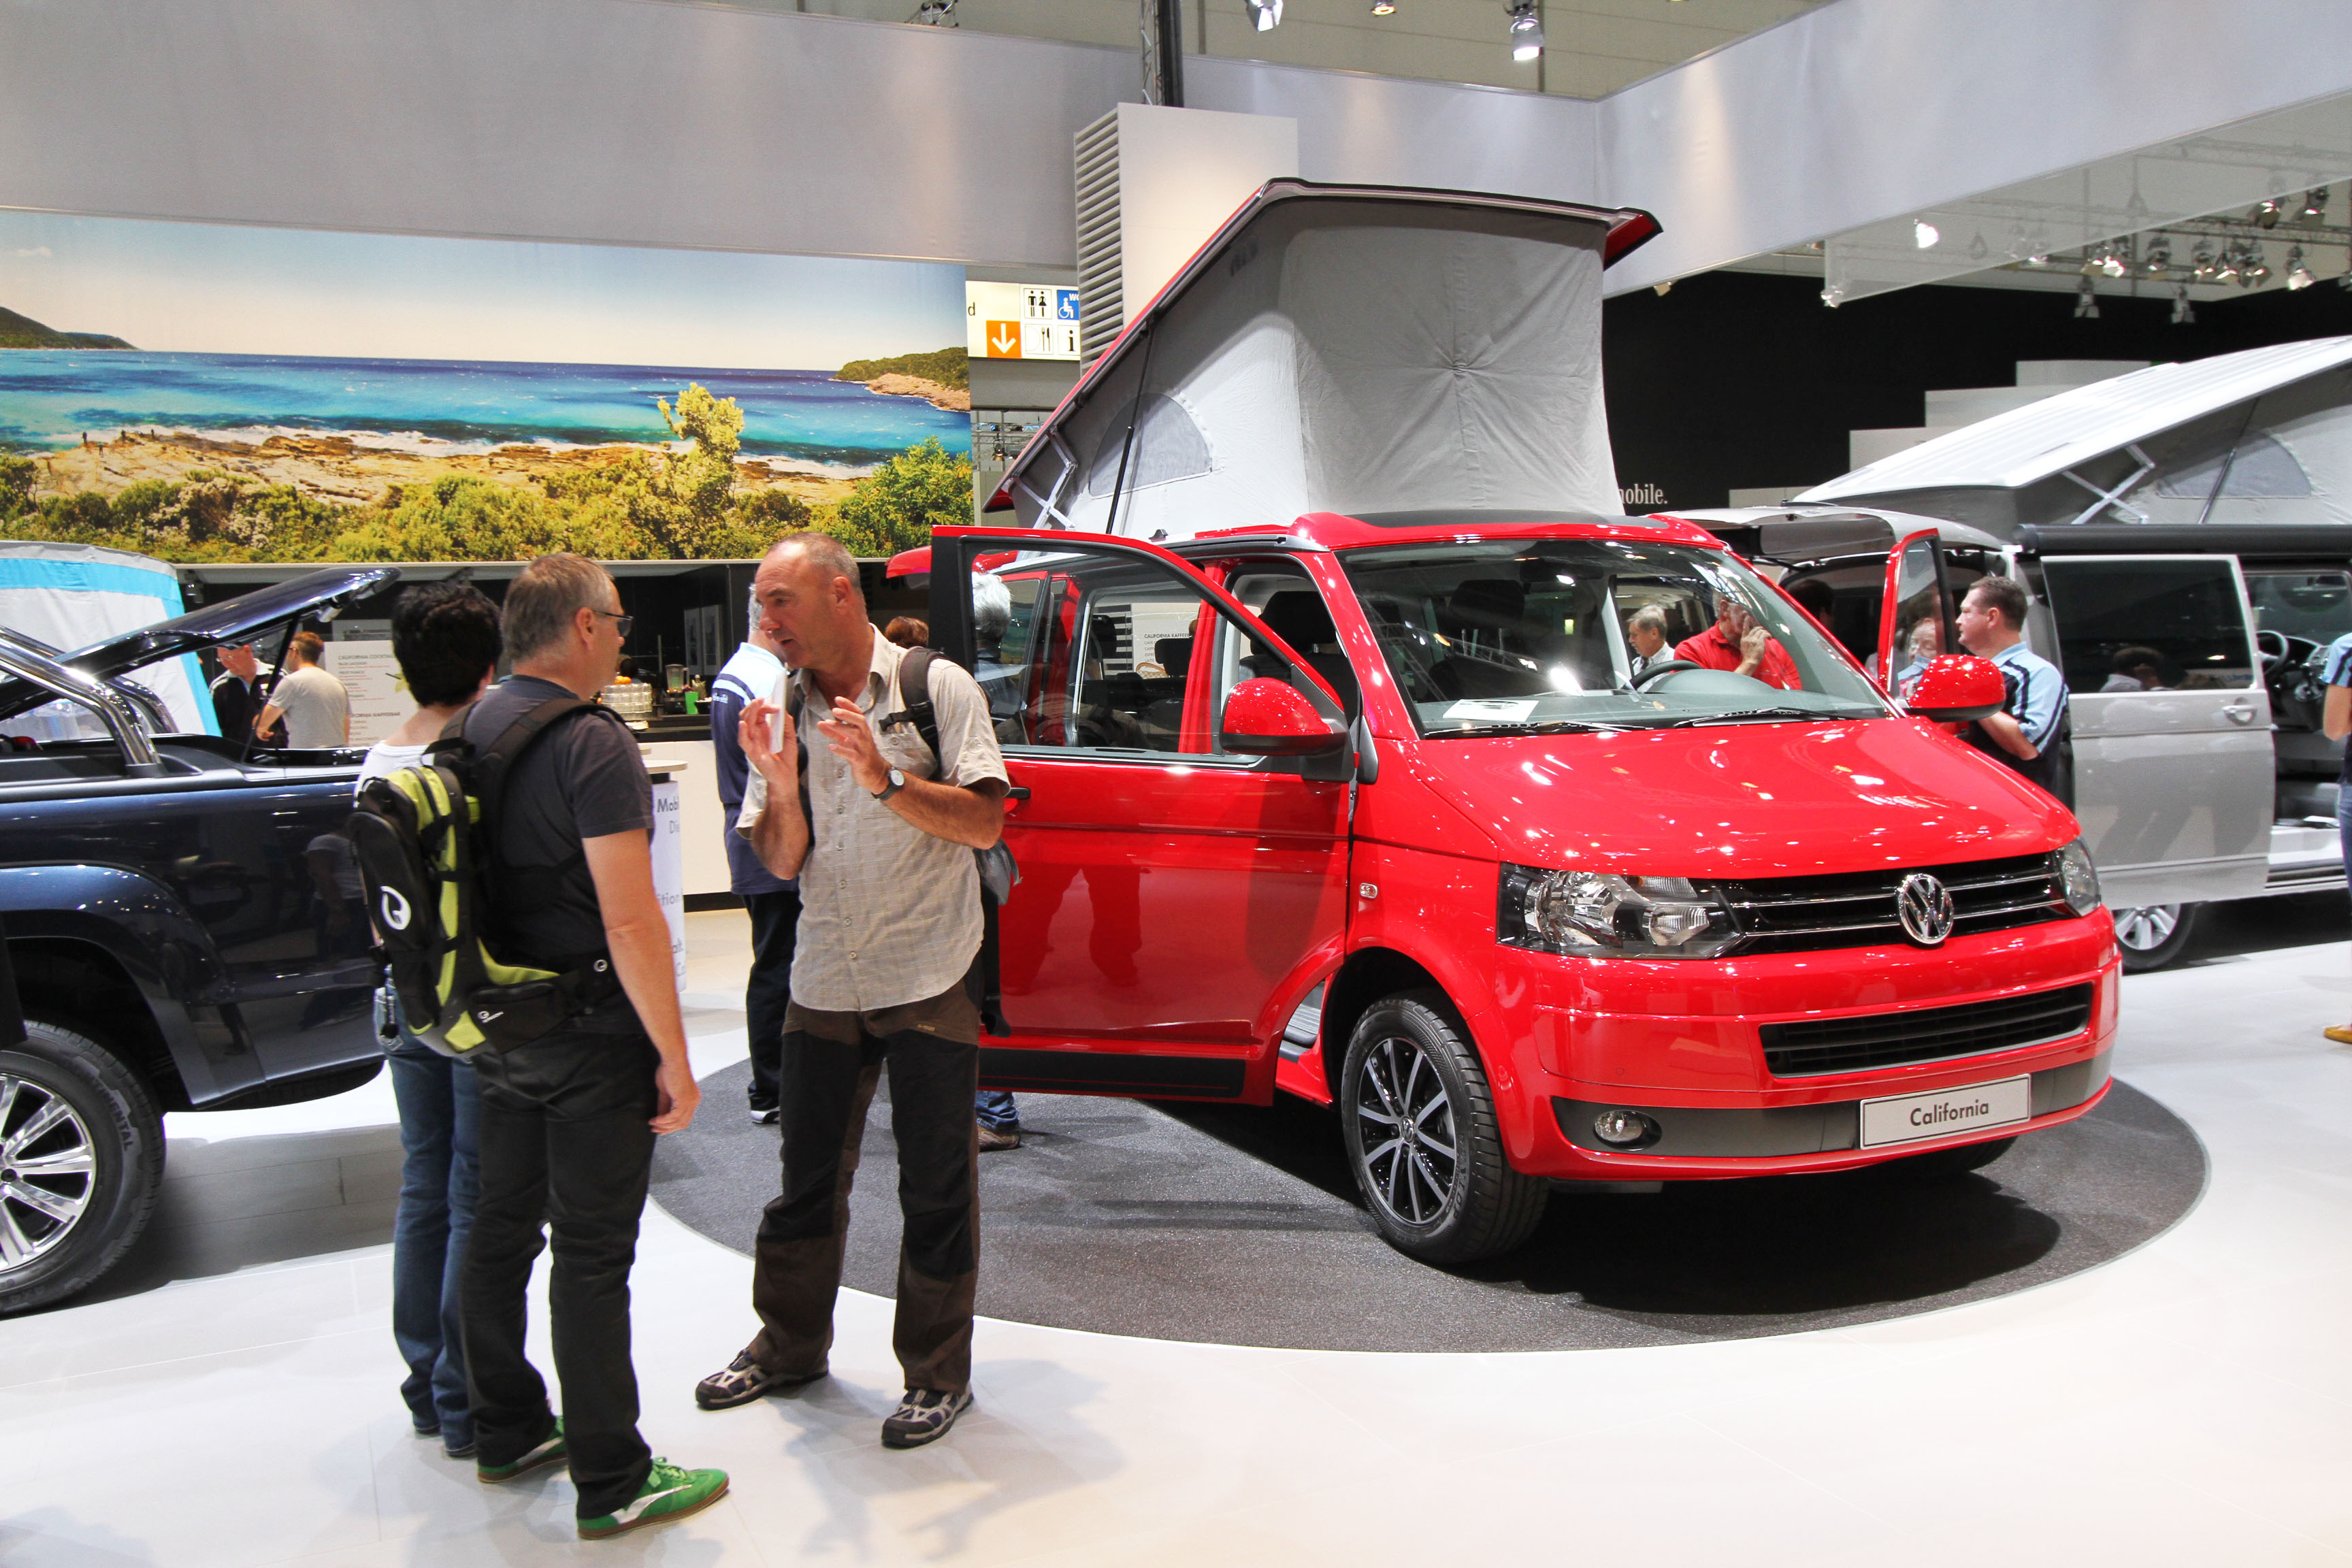 Caravan Salon 2012: Die Highlights der Messe im Video